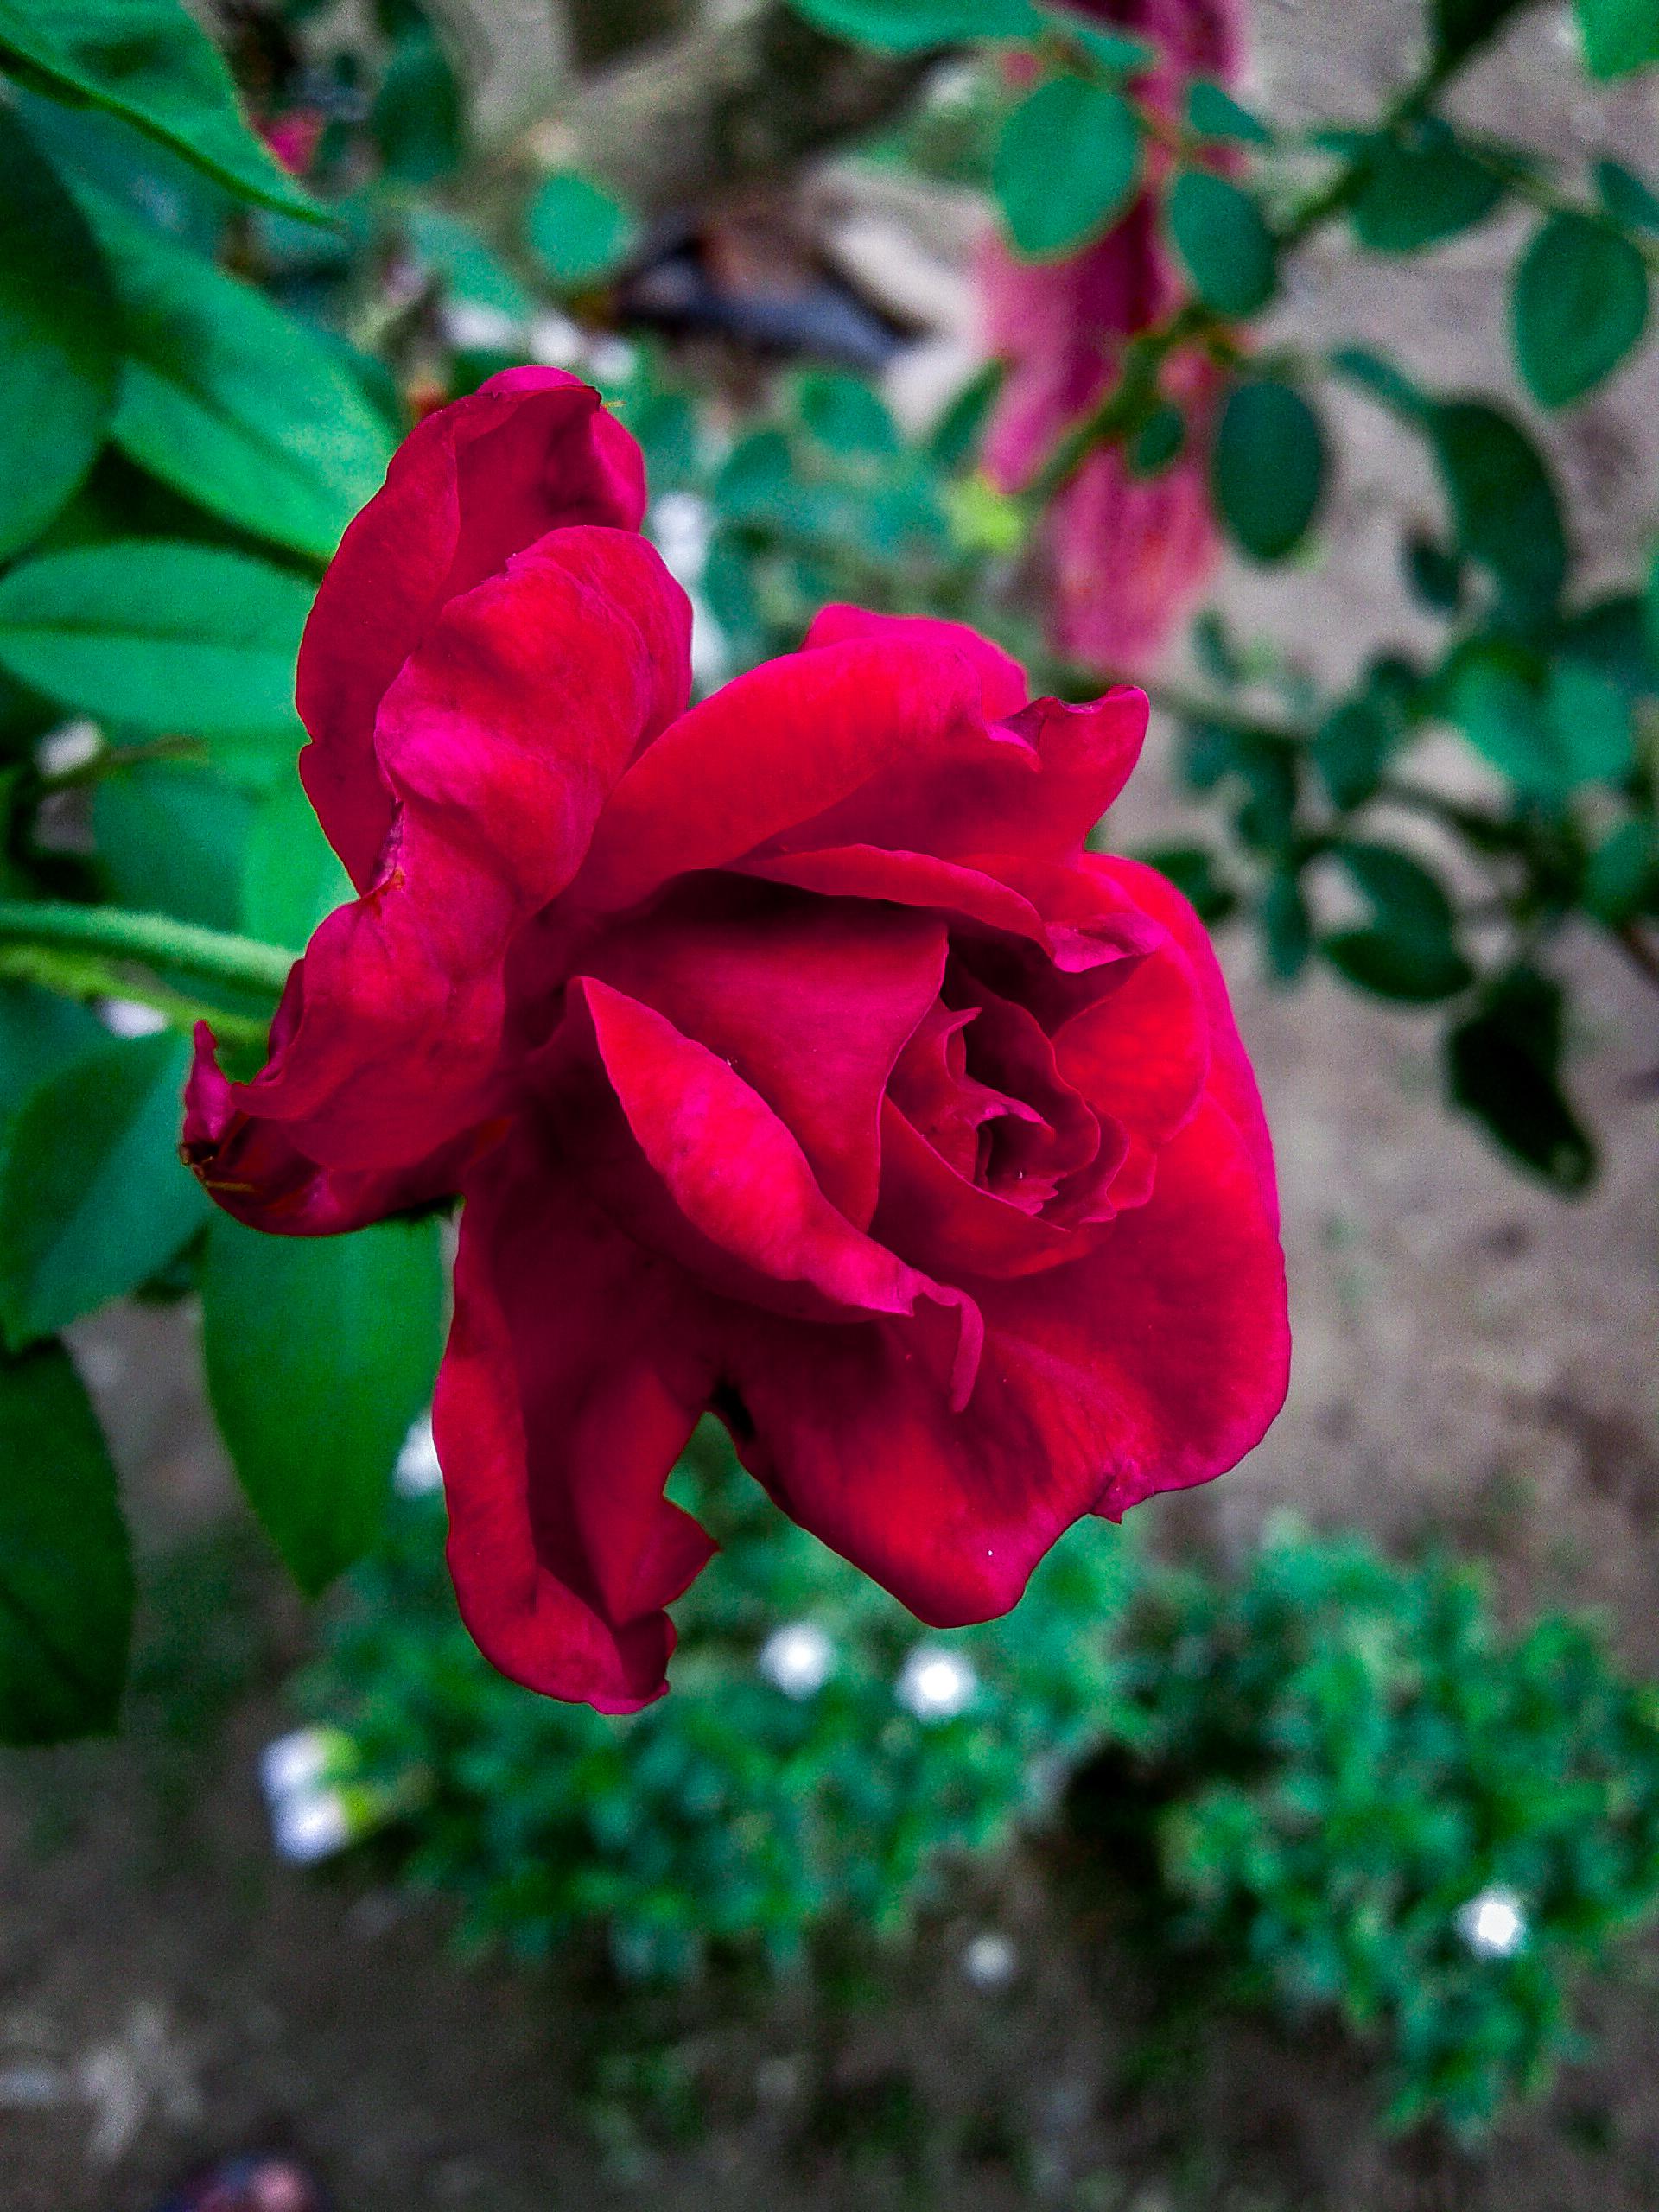 A red rose in the garden.